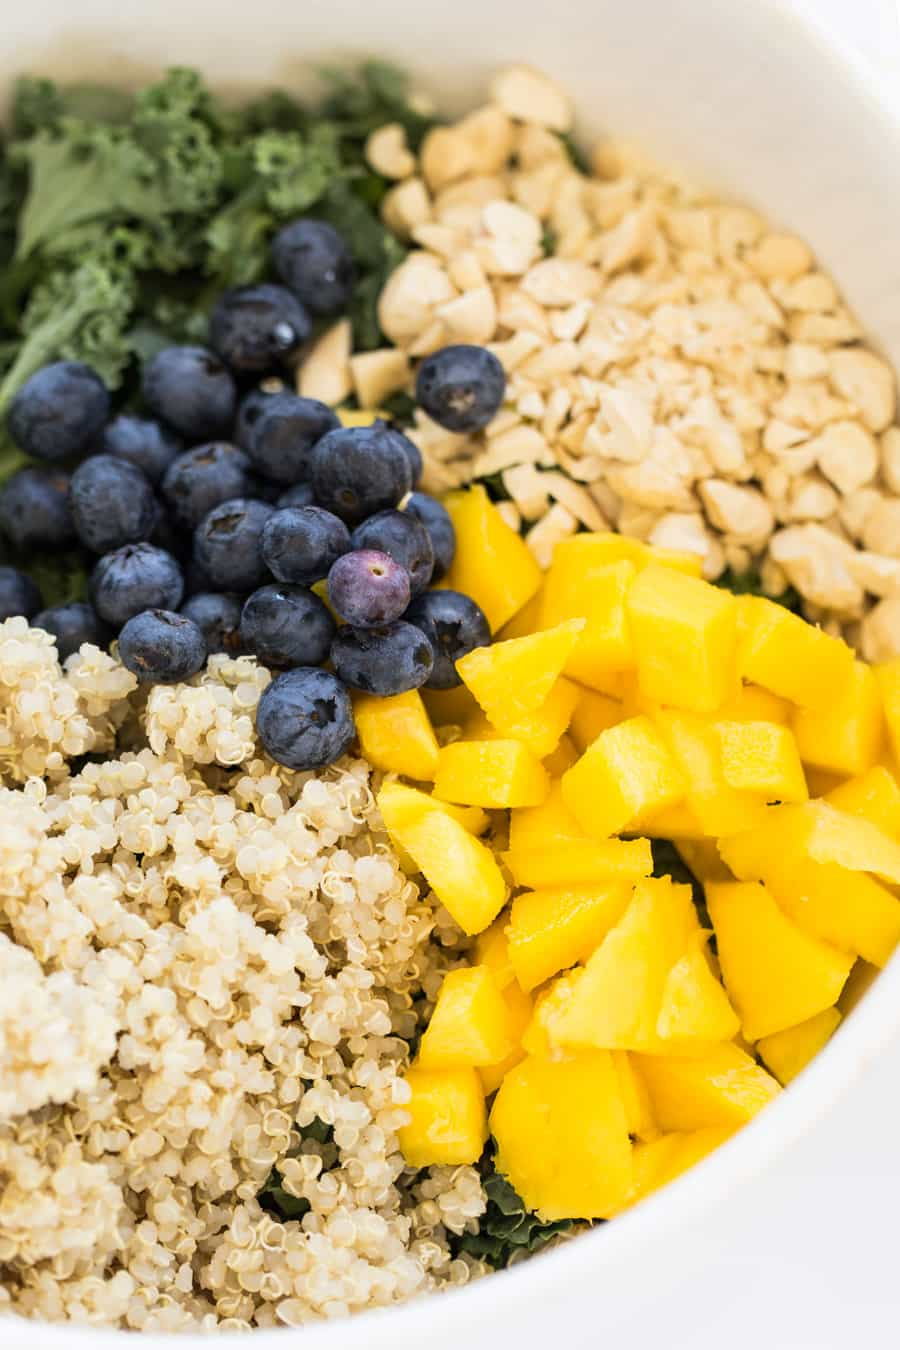 Tropical Kale & Quinoa Power Salad with all the power-packed goodies!